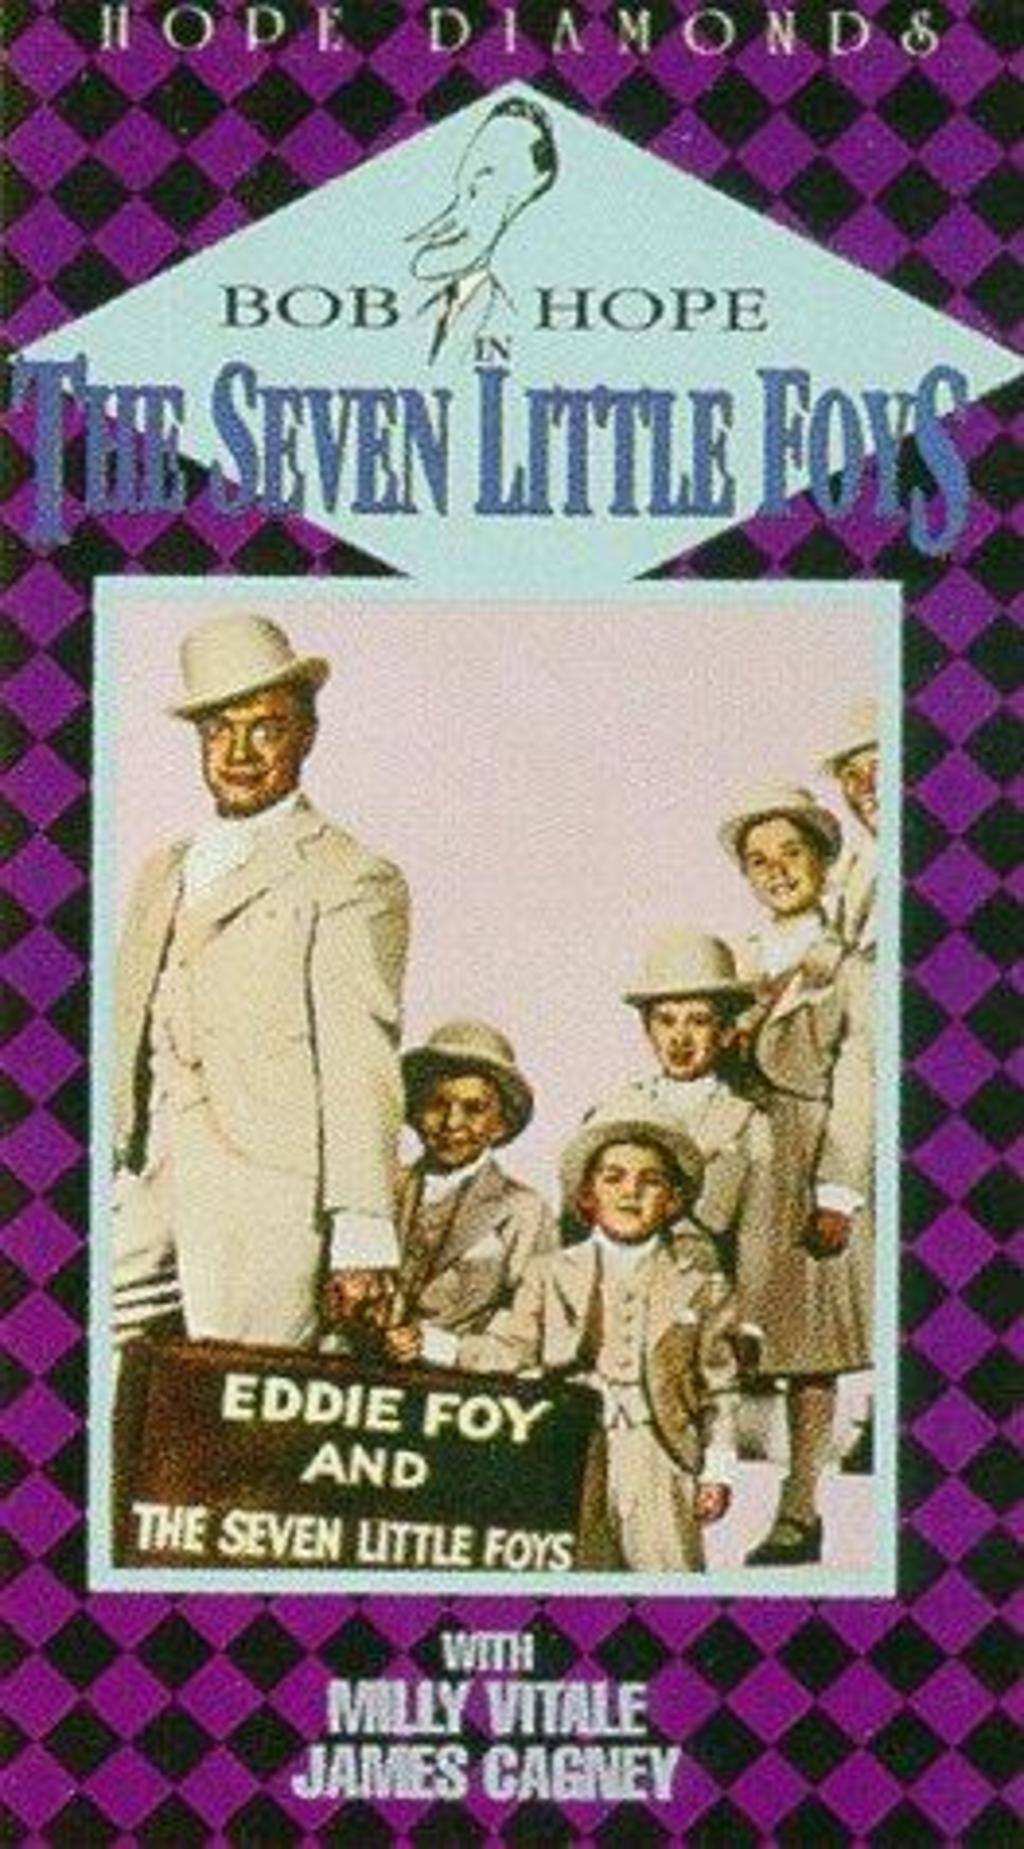 Watch The Seven Little Foys On Netflix Today